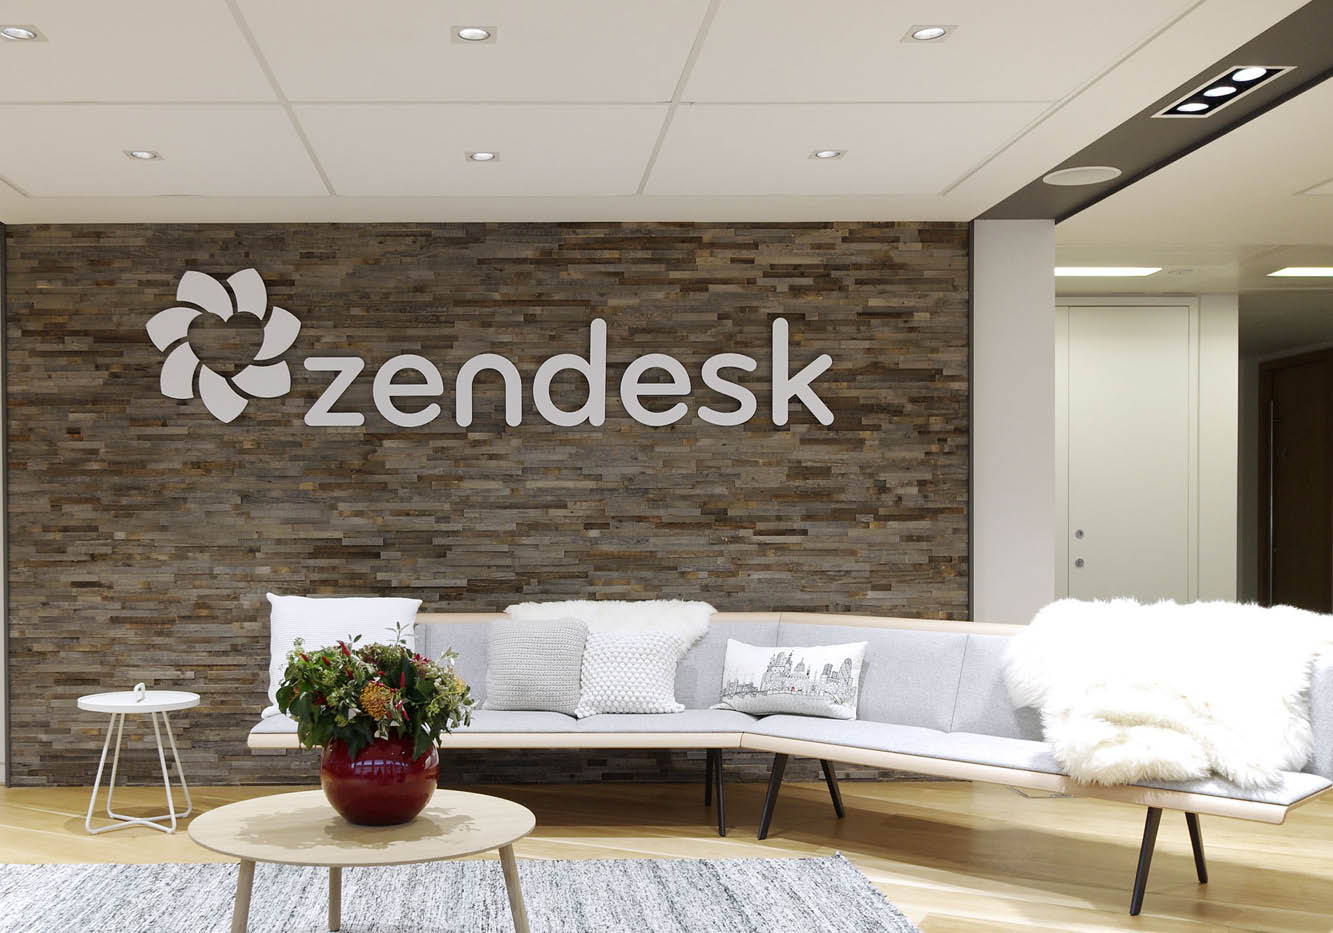 Designcubed Architects Zendesk